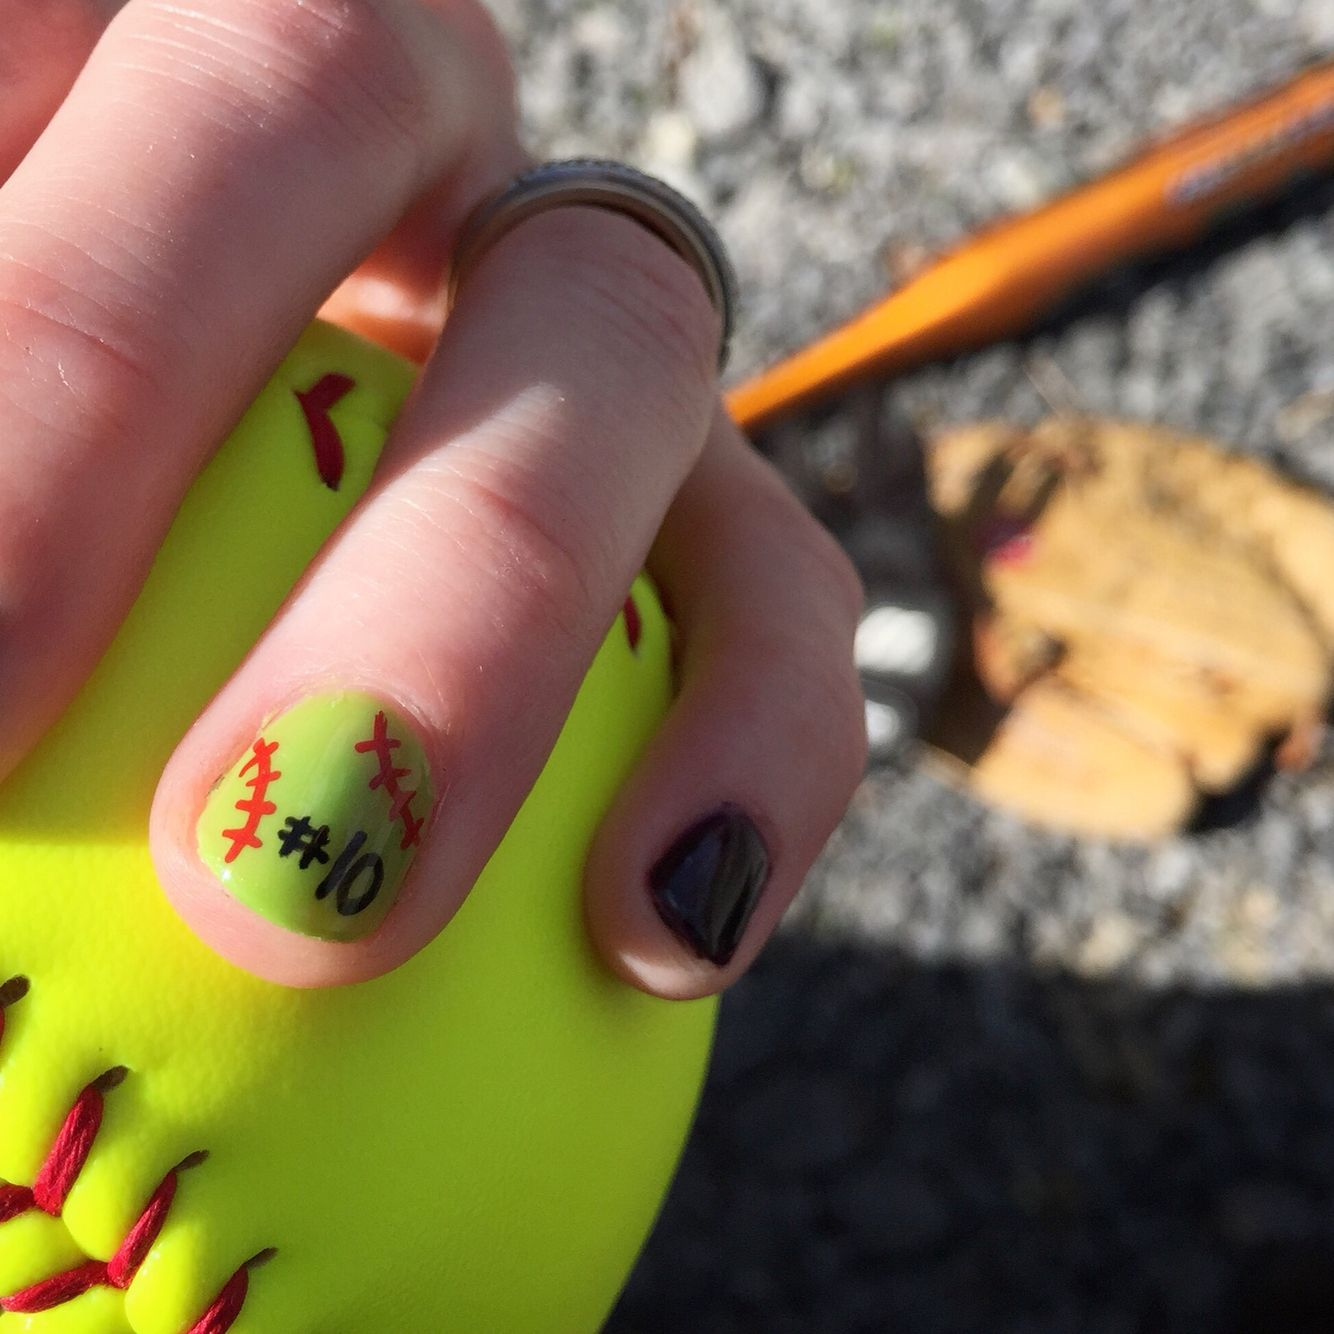 DIY softball nail design - DIY Softball Nail Design Manicure DIY Pinterest Softball